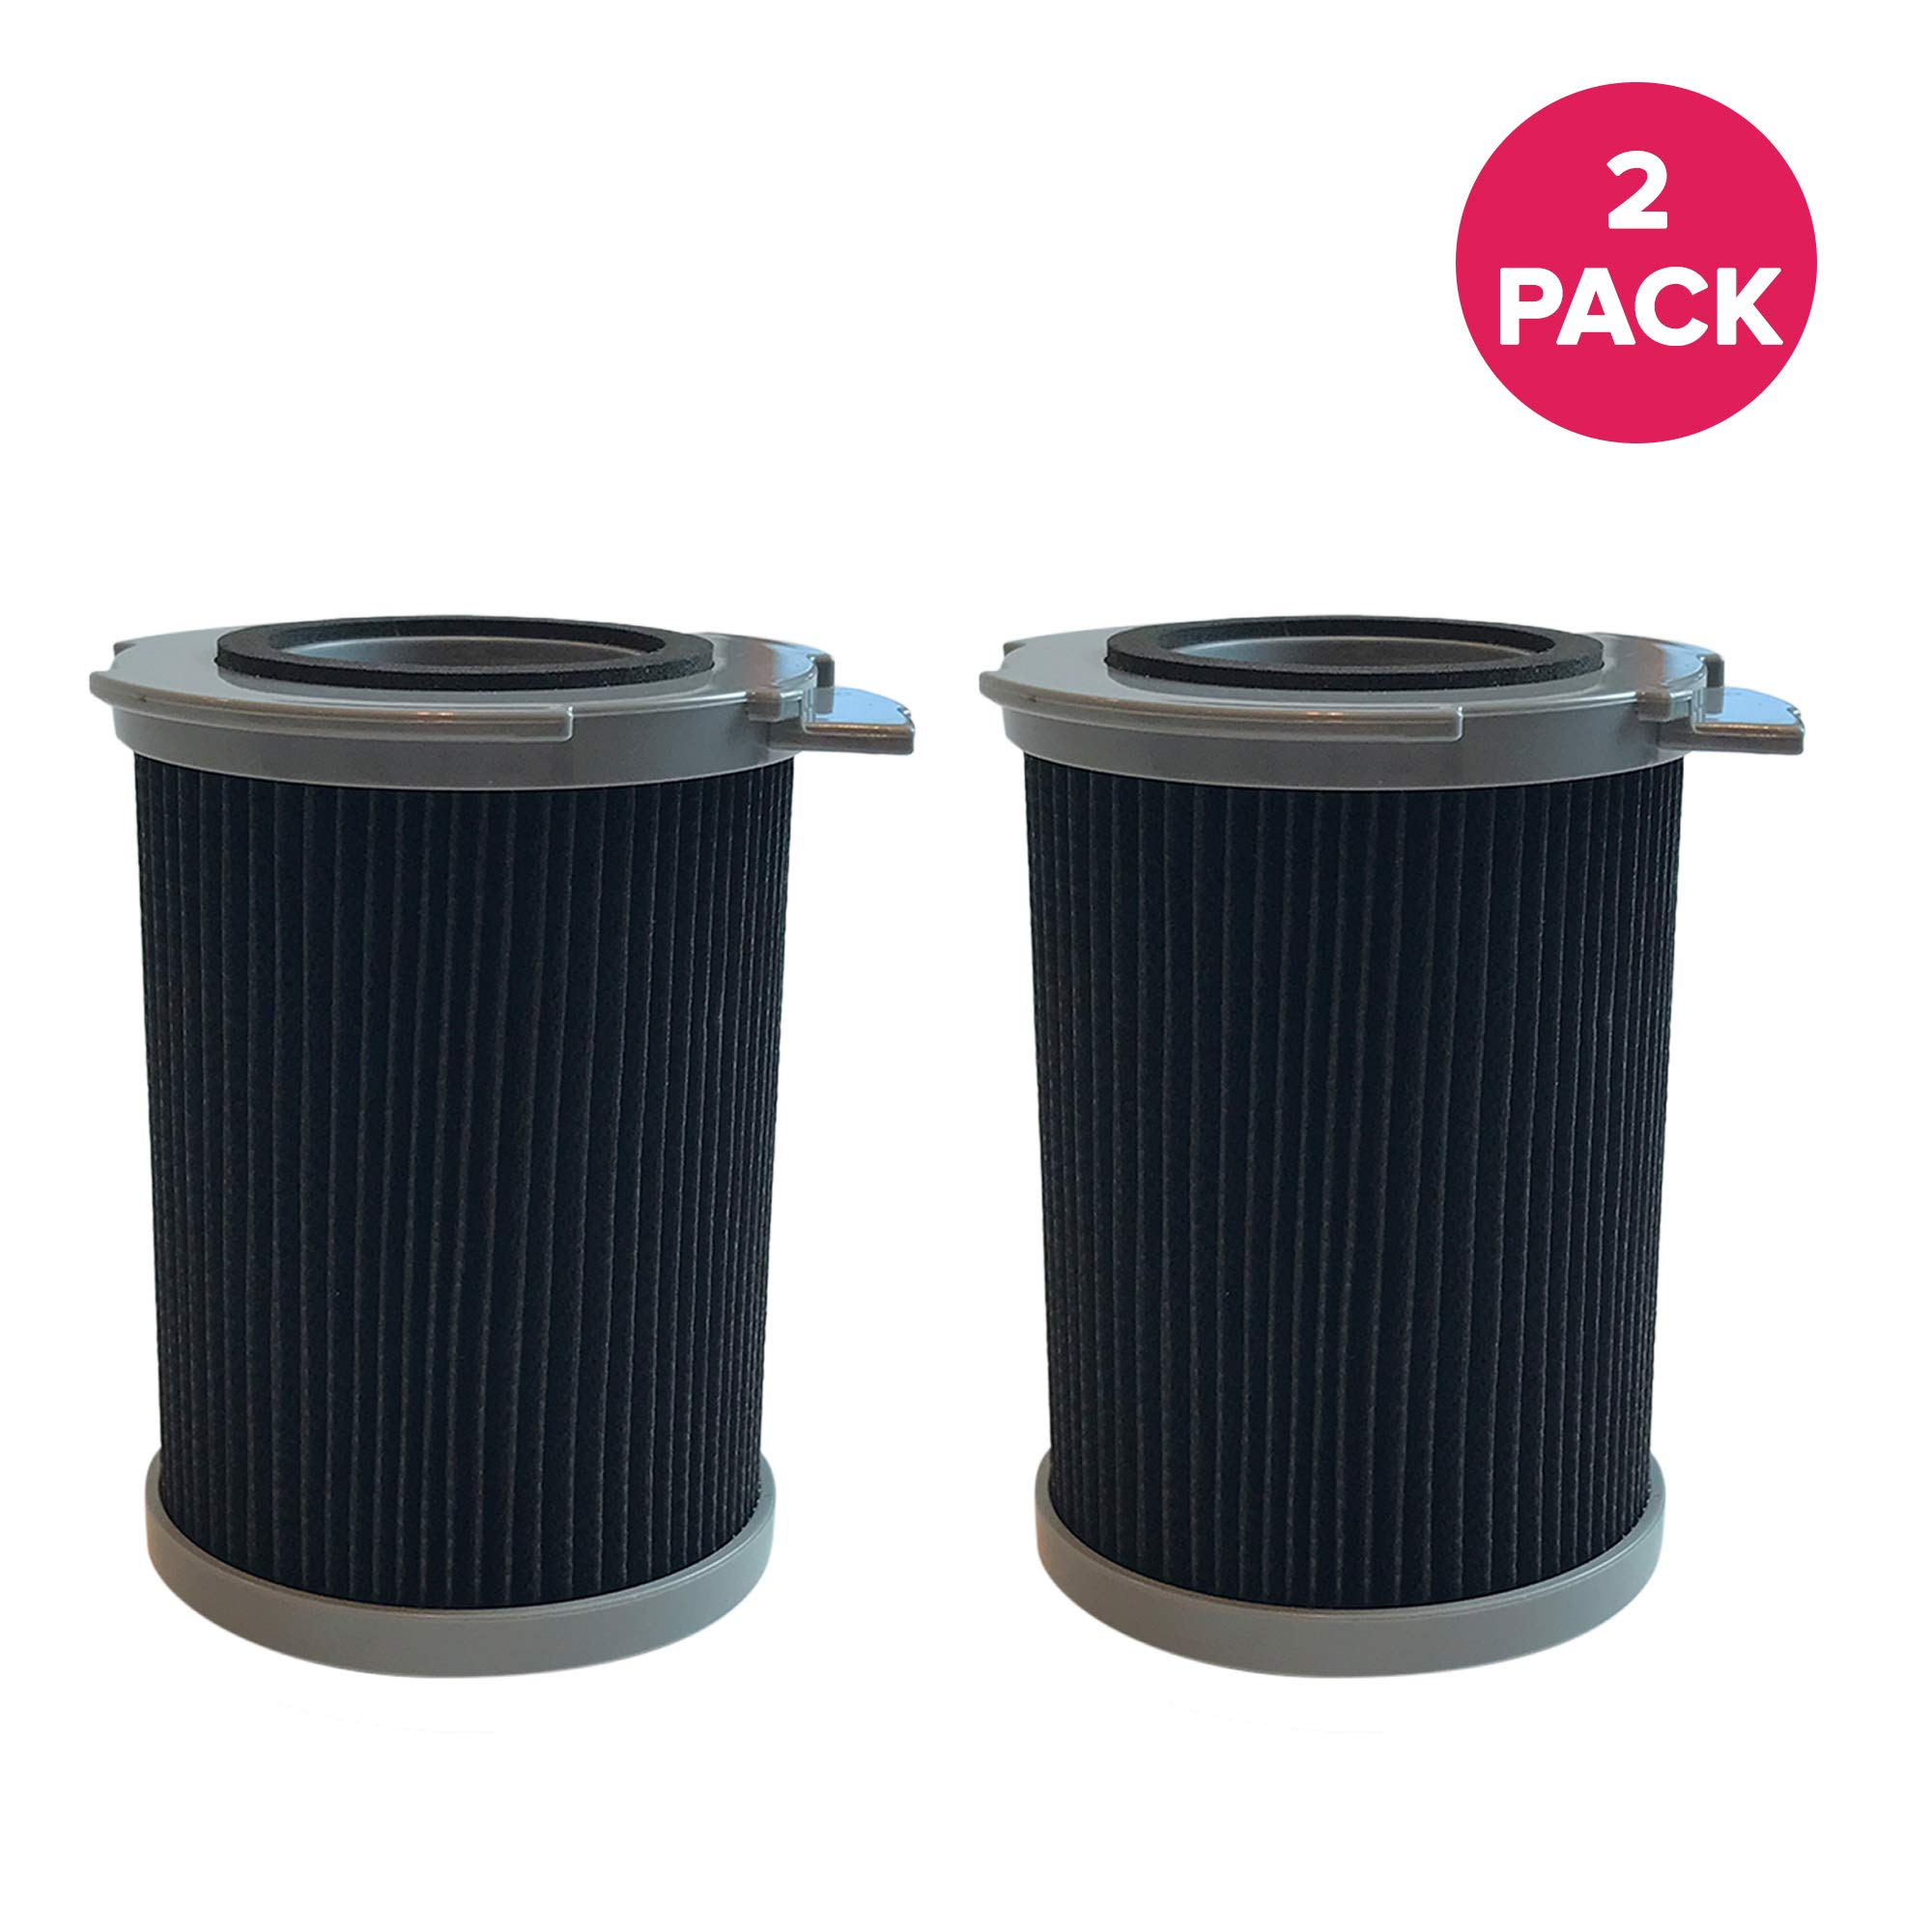 Crucial Vacuum Filter Replacement Parts # 59134033 - Compatible with Hoover Filters - Fits Hoover Windtunnel Bagless Air Filter for Compact Vacs, Vacuums, Vac, Home, Office Use - Washable (2 Pack) by Crucial Vacuum